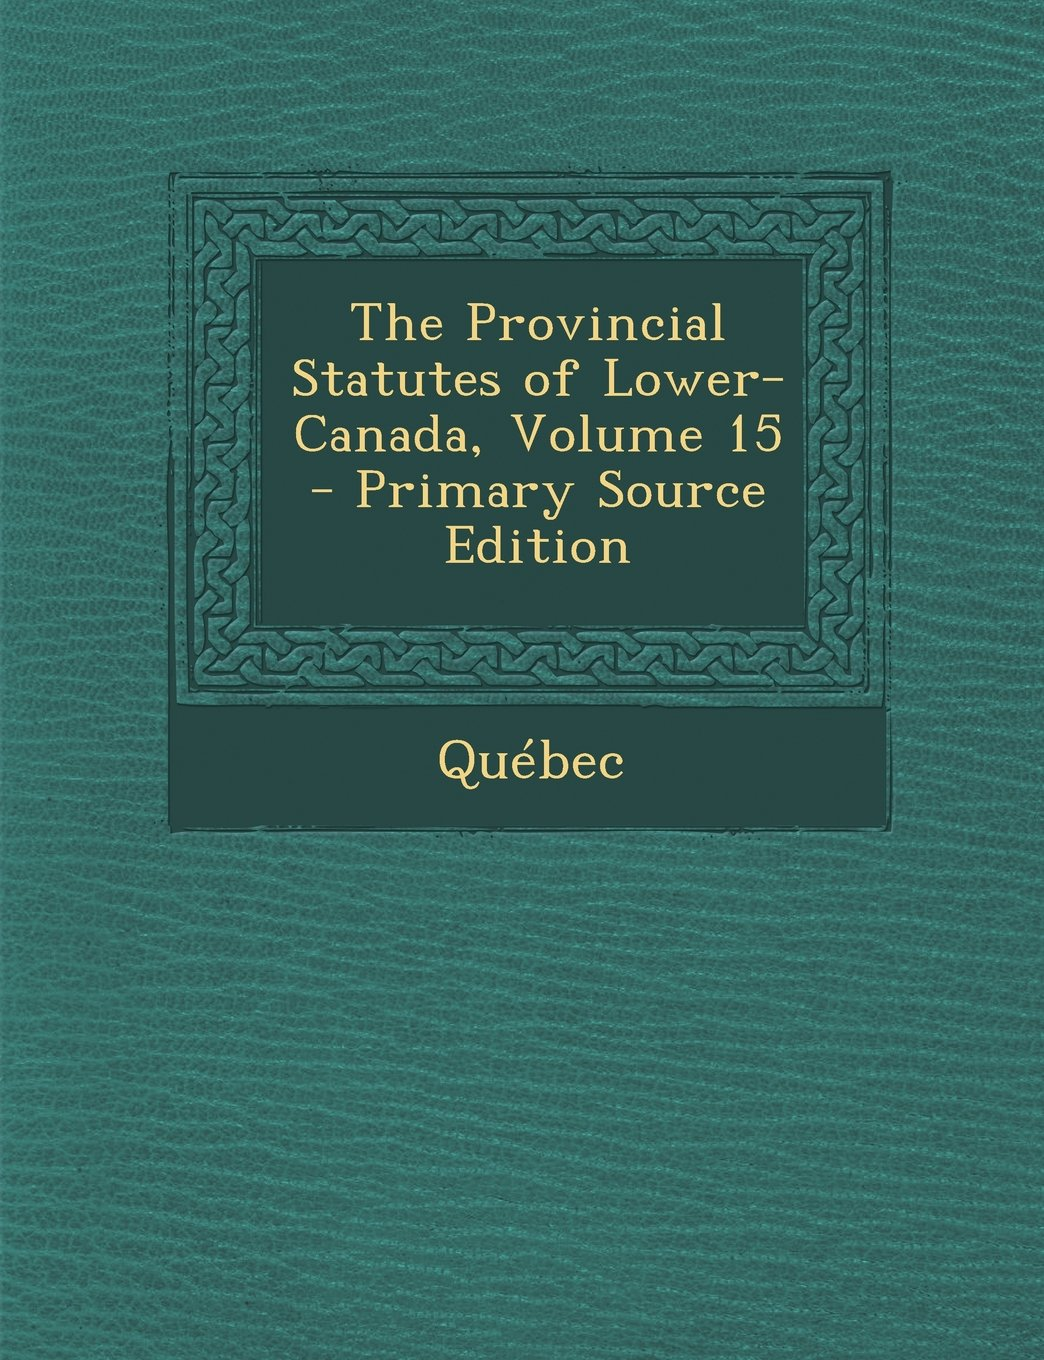 The Provincial Statutes of Lower-Canada, Volume 15 ebook